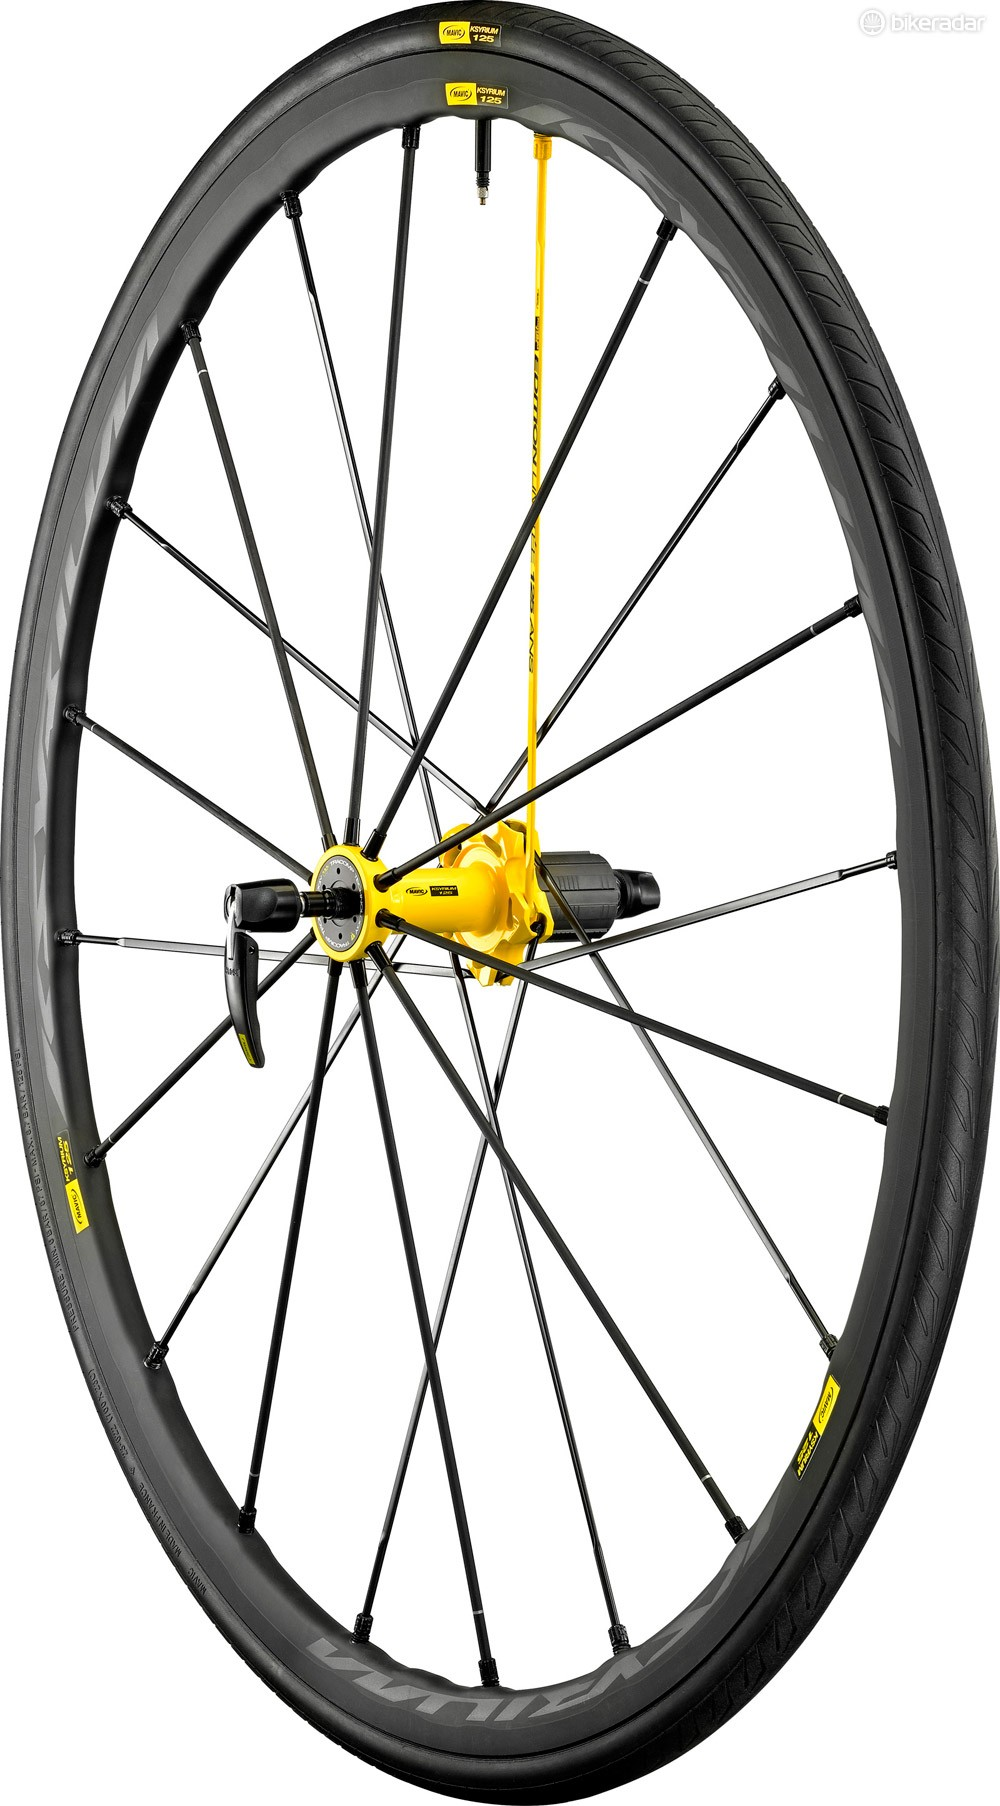 The new Ksyrium 125 debuts Mavic's new 4D inter spoke milling, promising lighter weight and improved aerodynamics